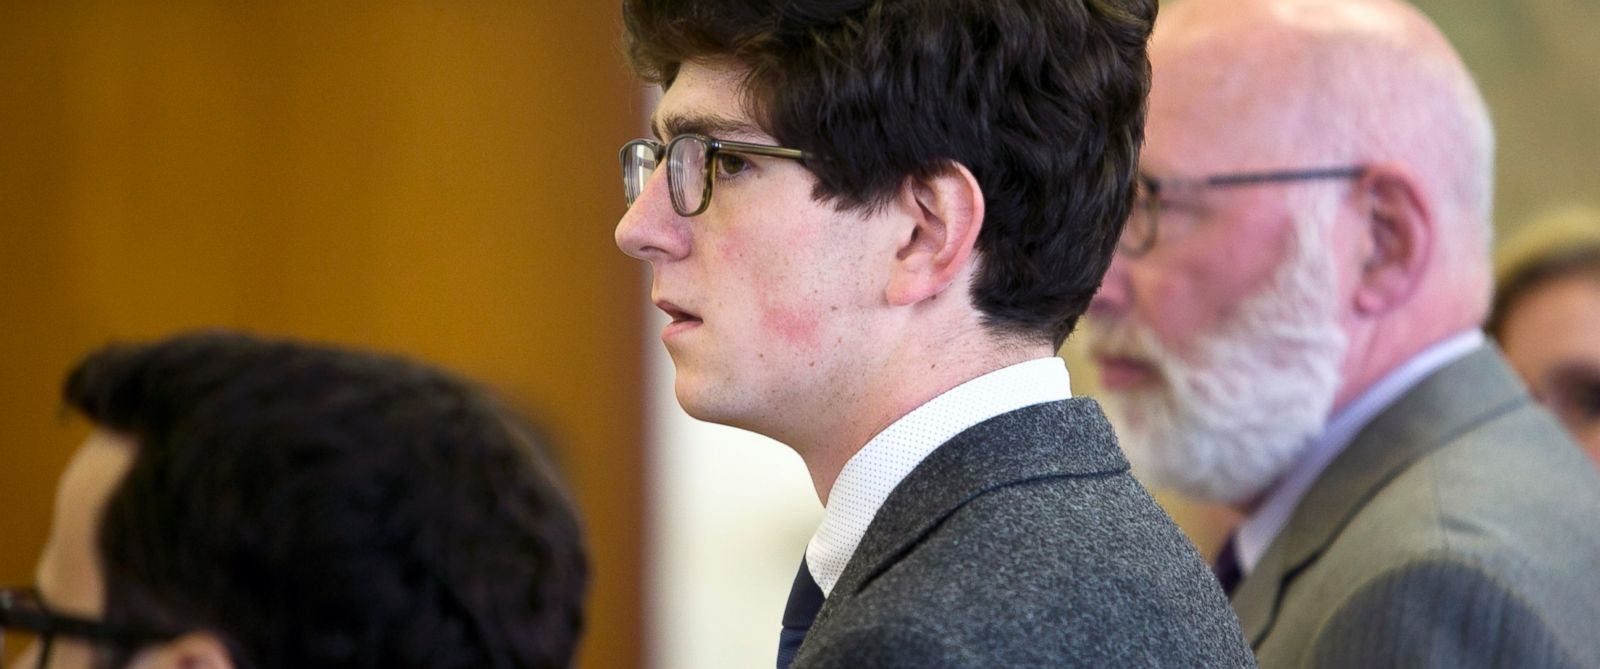 PHOTO:Owen Labrie looks over at the jury as his verdict is read at Merrimack County Superior Court, Aug. 28, 2015 in Concord, N.H.